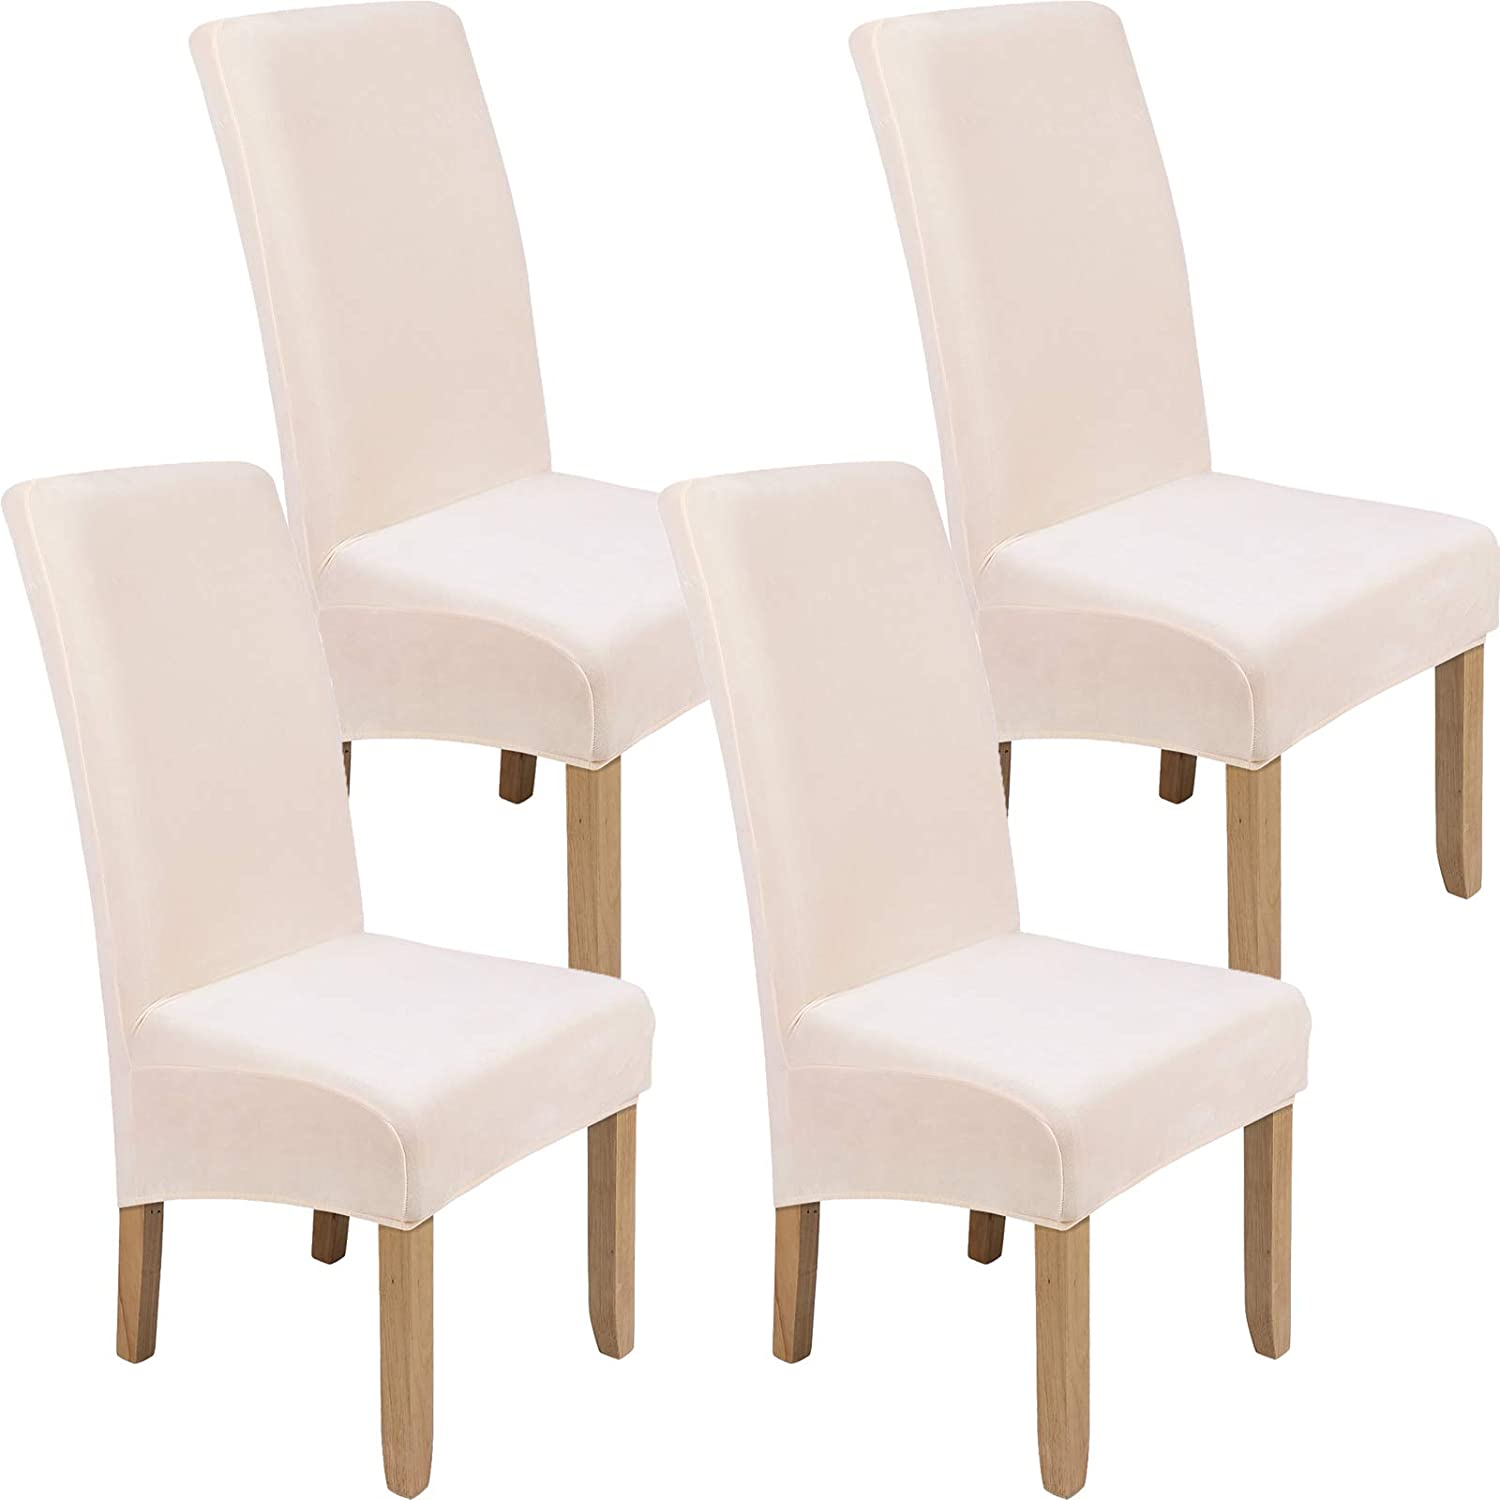 Limited time trial price Colorxy Large Velvet Spandex Recommended Chair Covers of for Dining Set Room